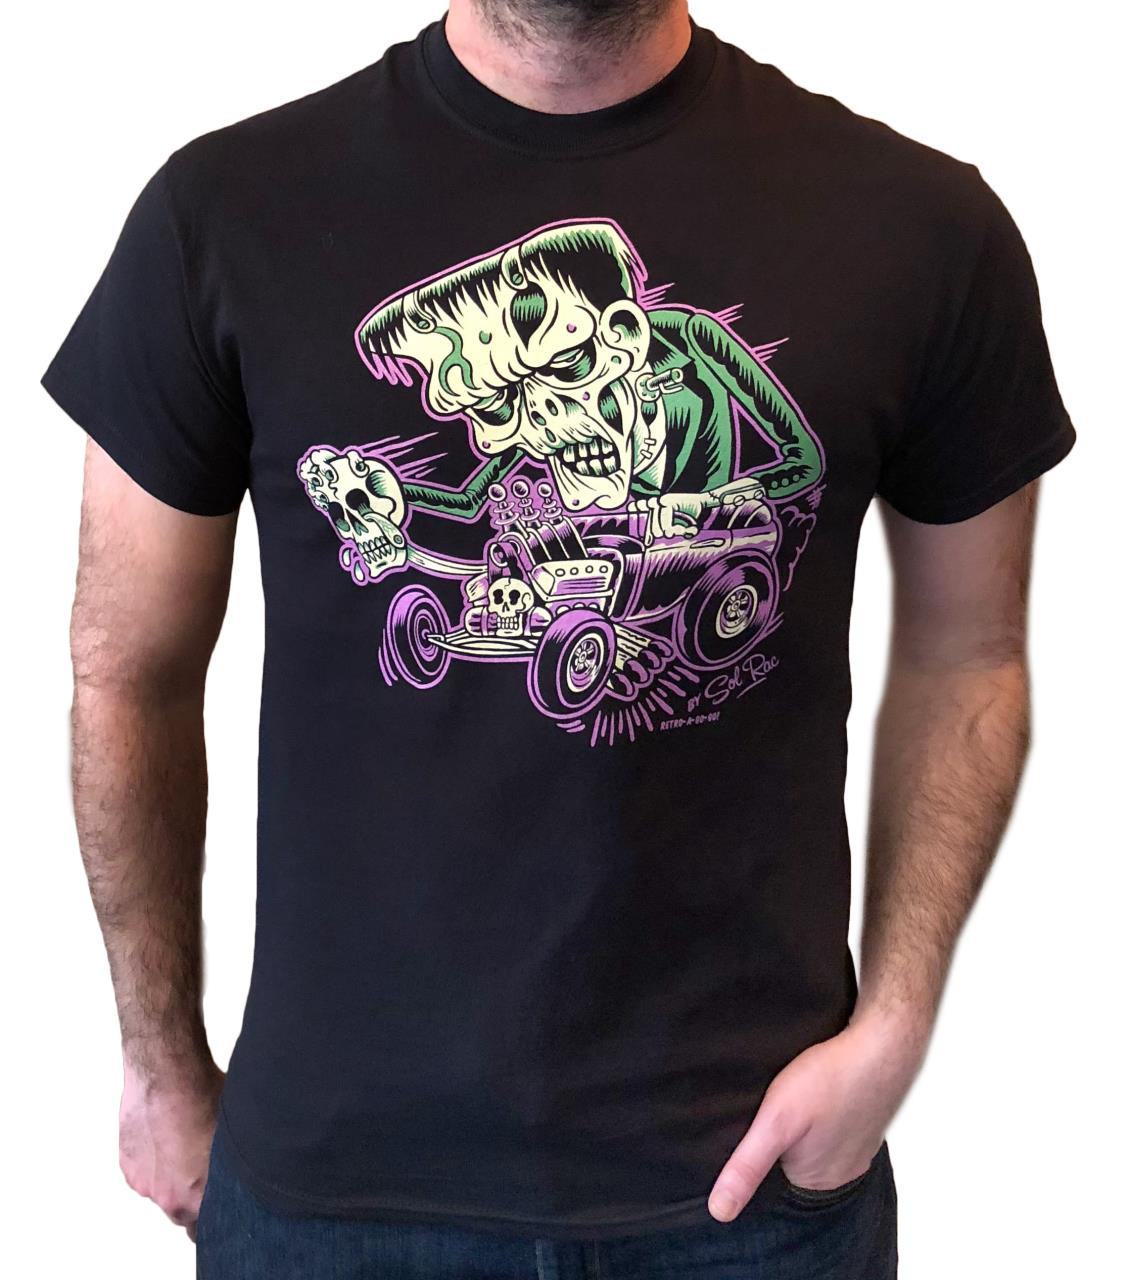 Monster Rod Men's T-Shirt* - 0659682805849